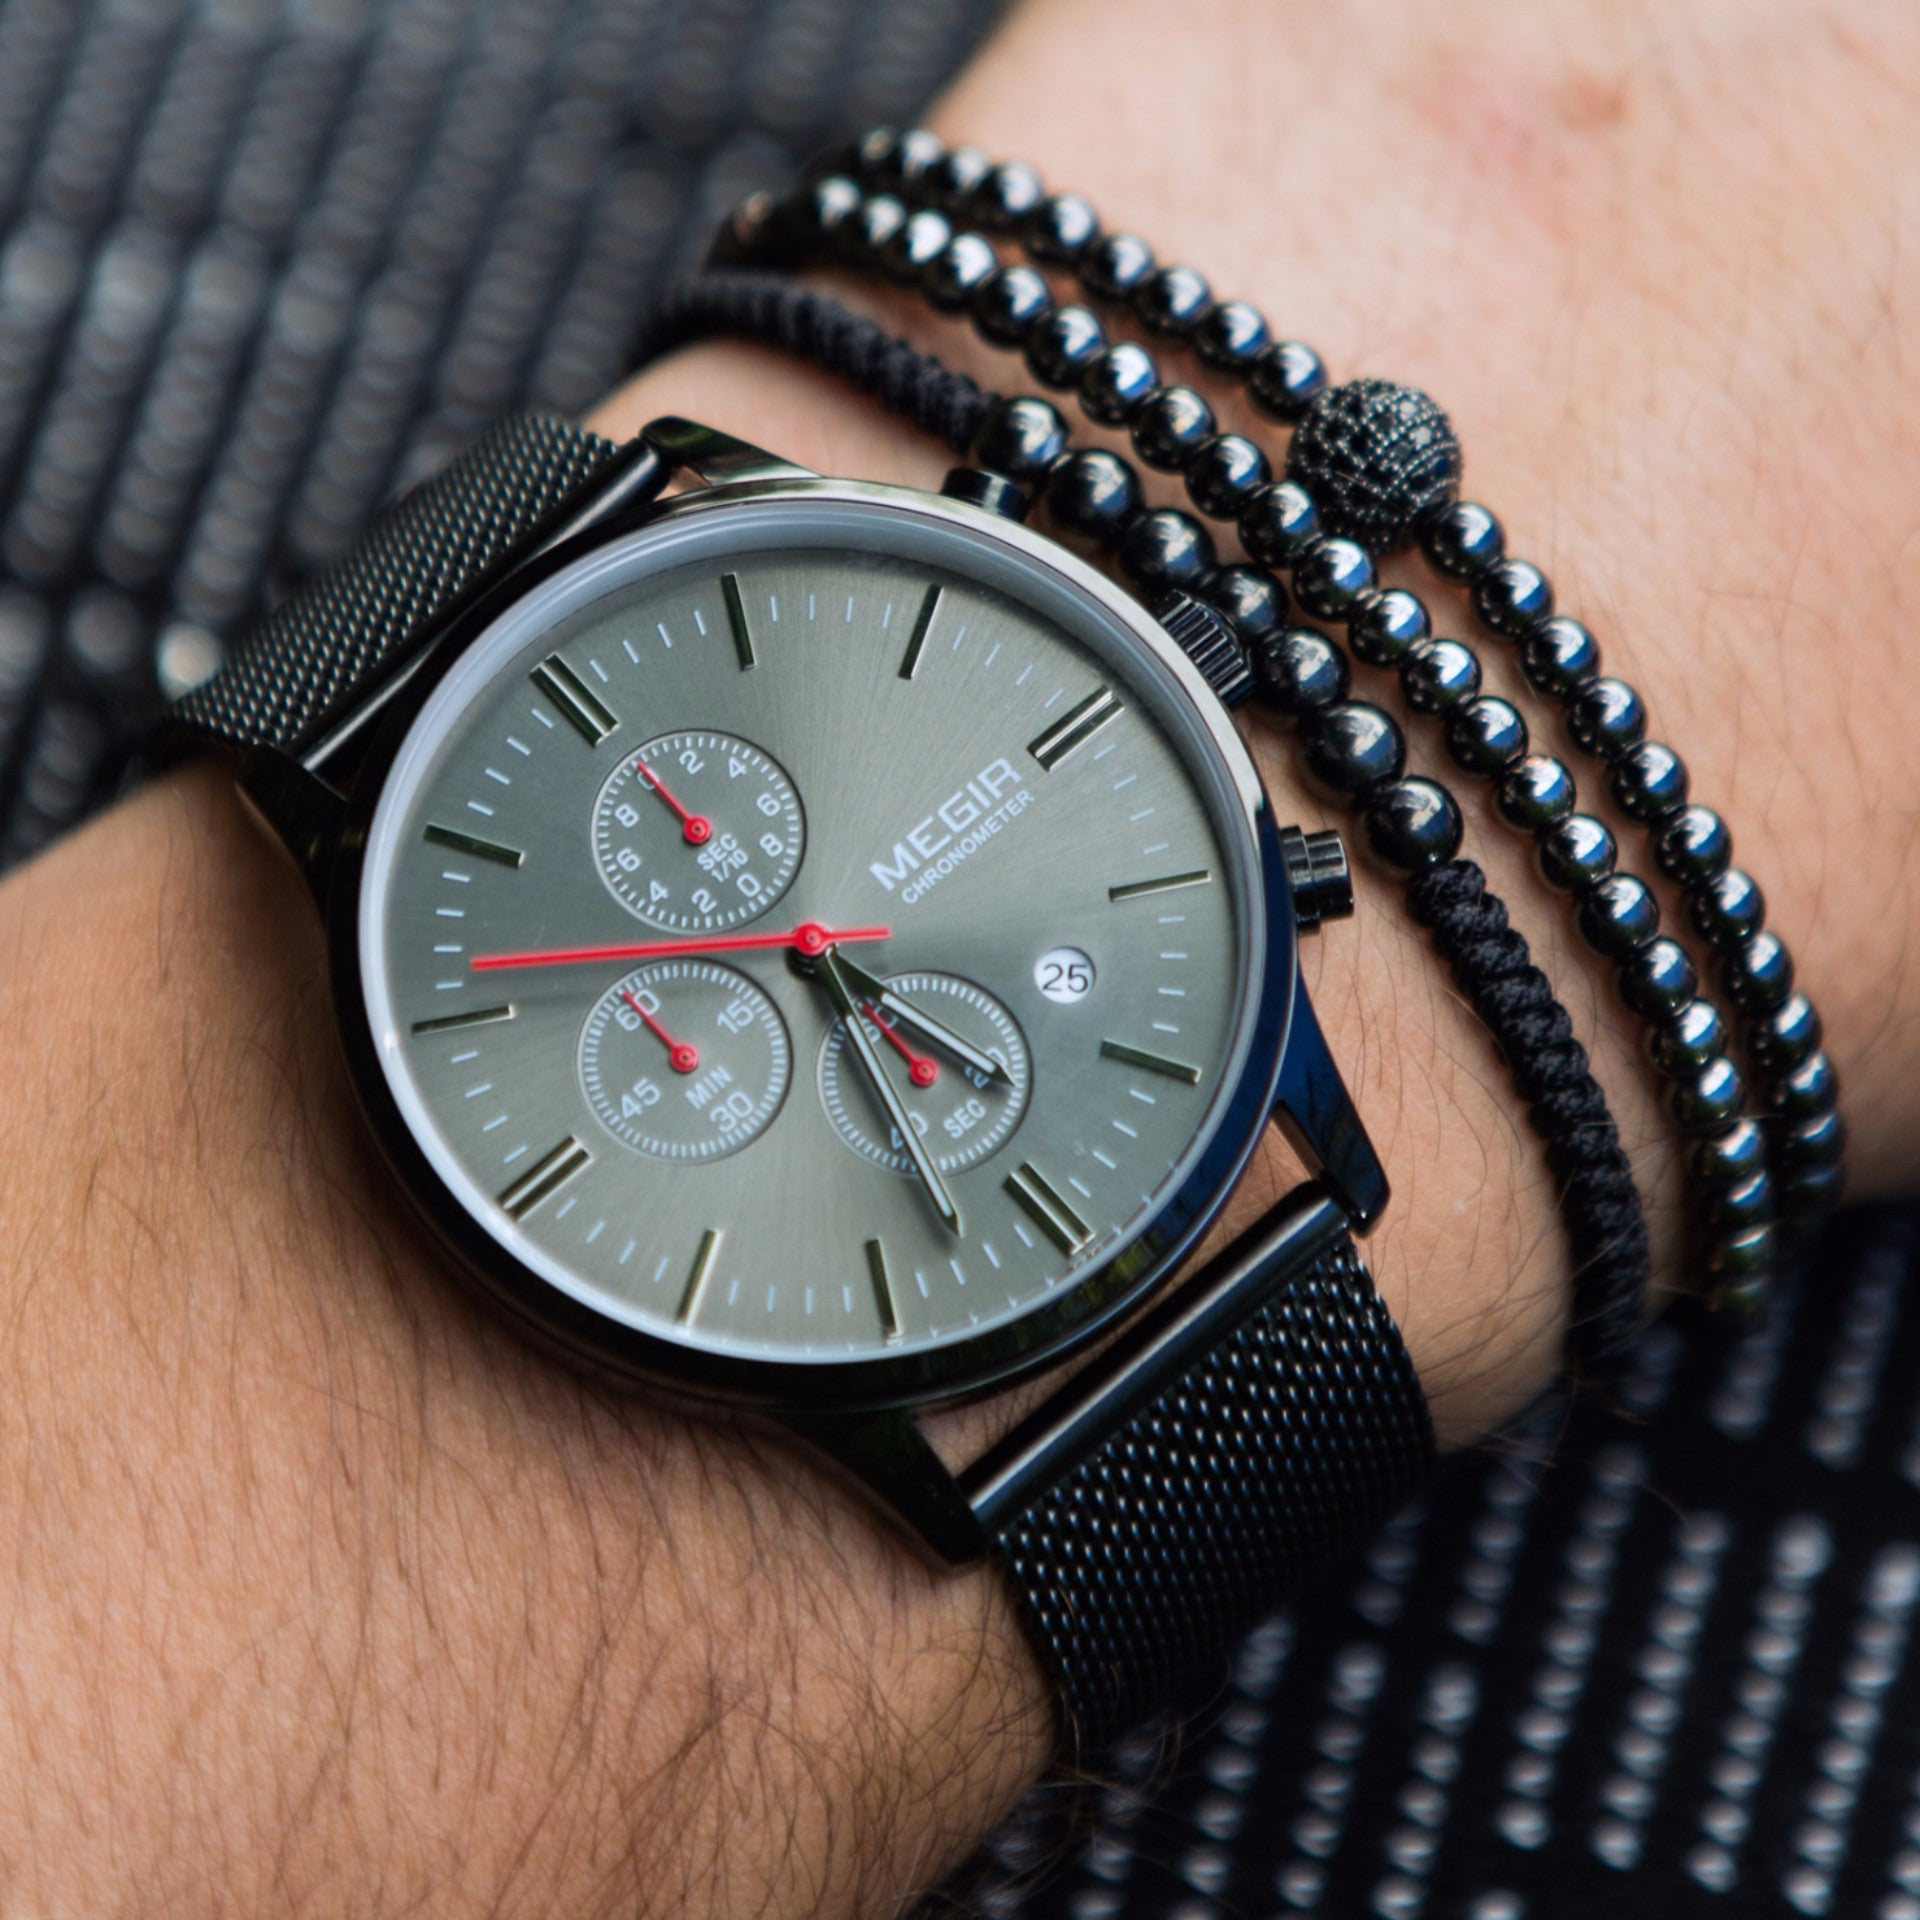 s Watches: The Ultimate Gift Guide